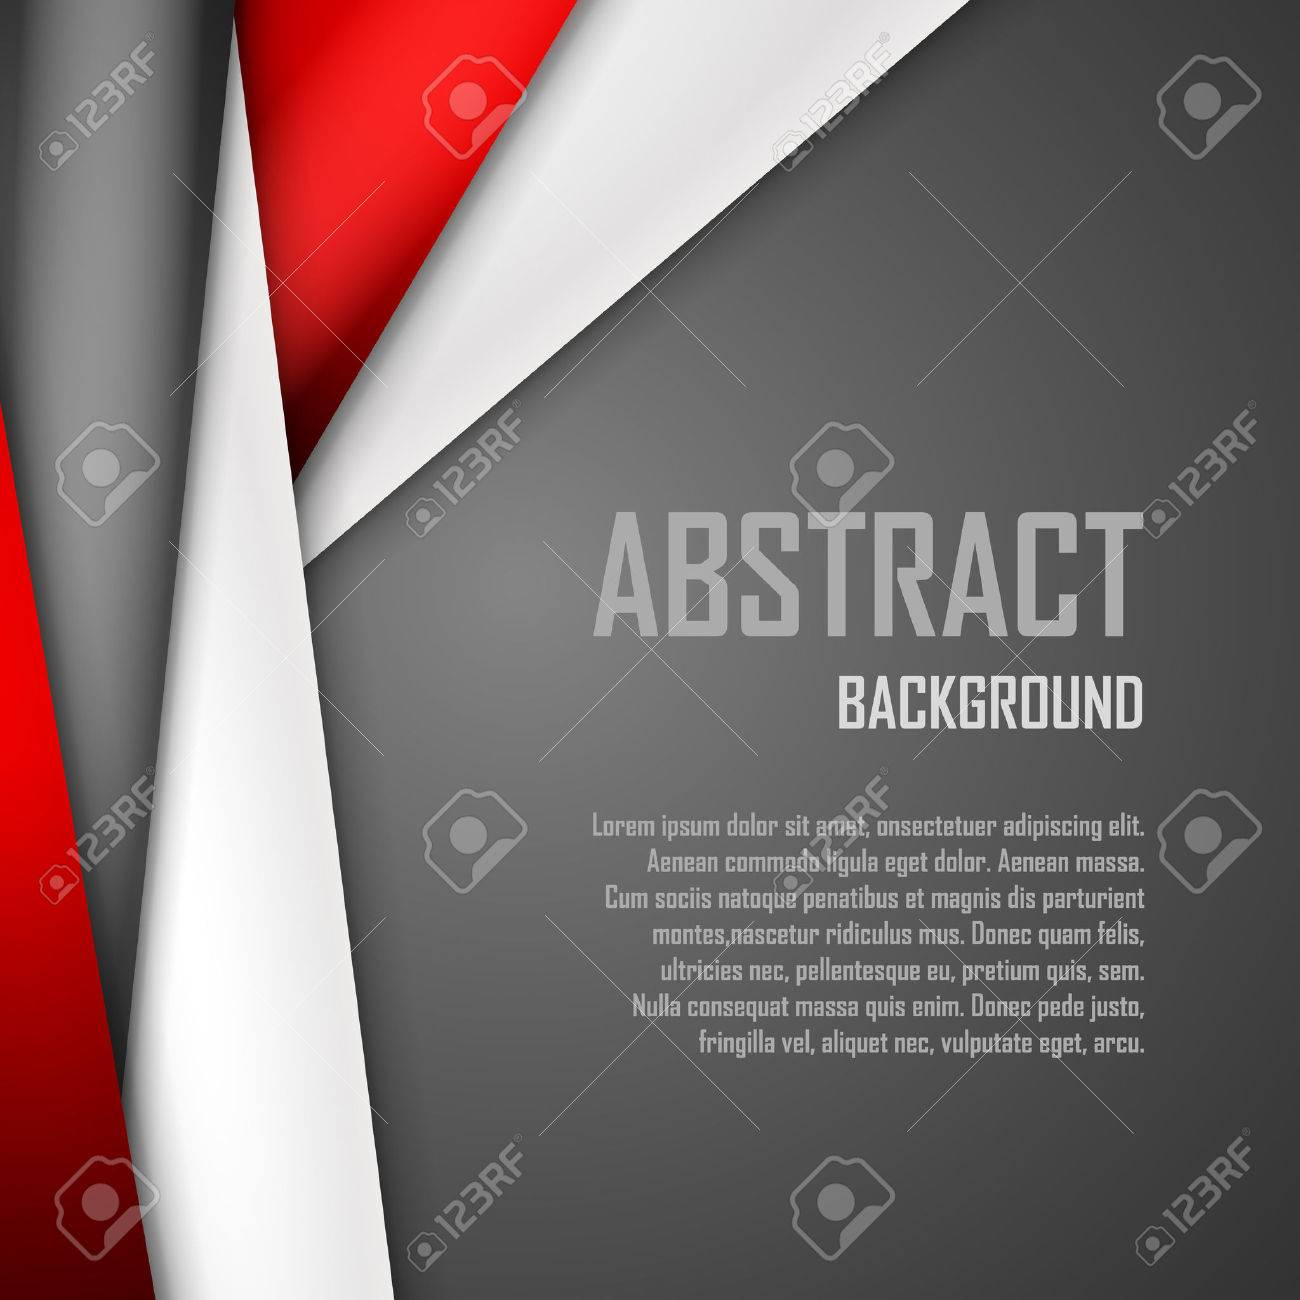 Abstract background of red, white and black origami paper. - 49451605